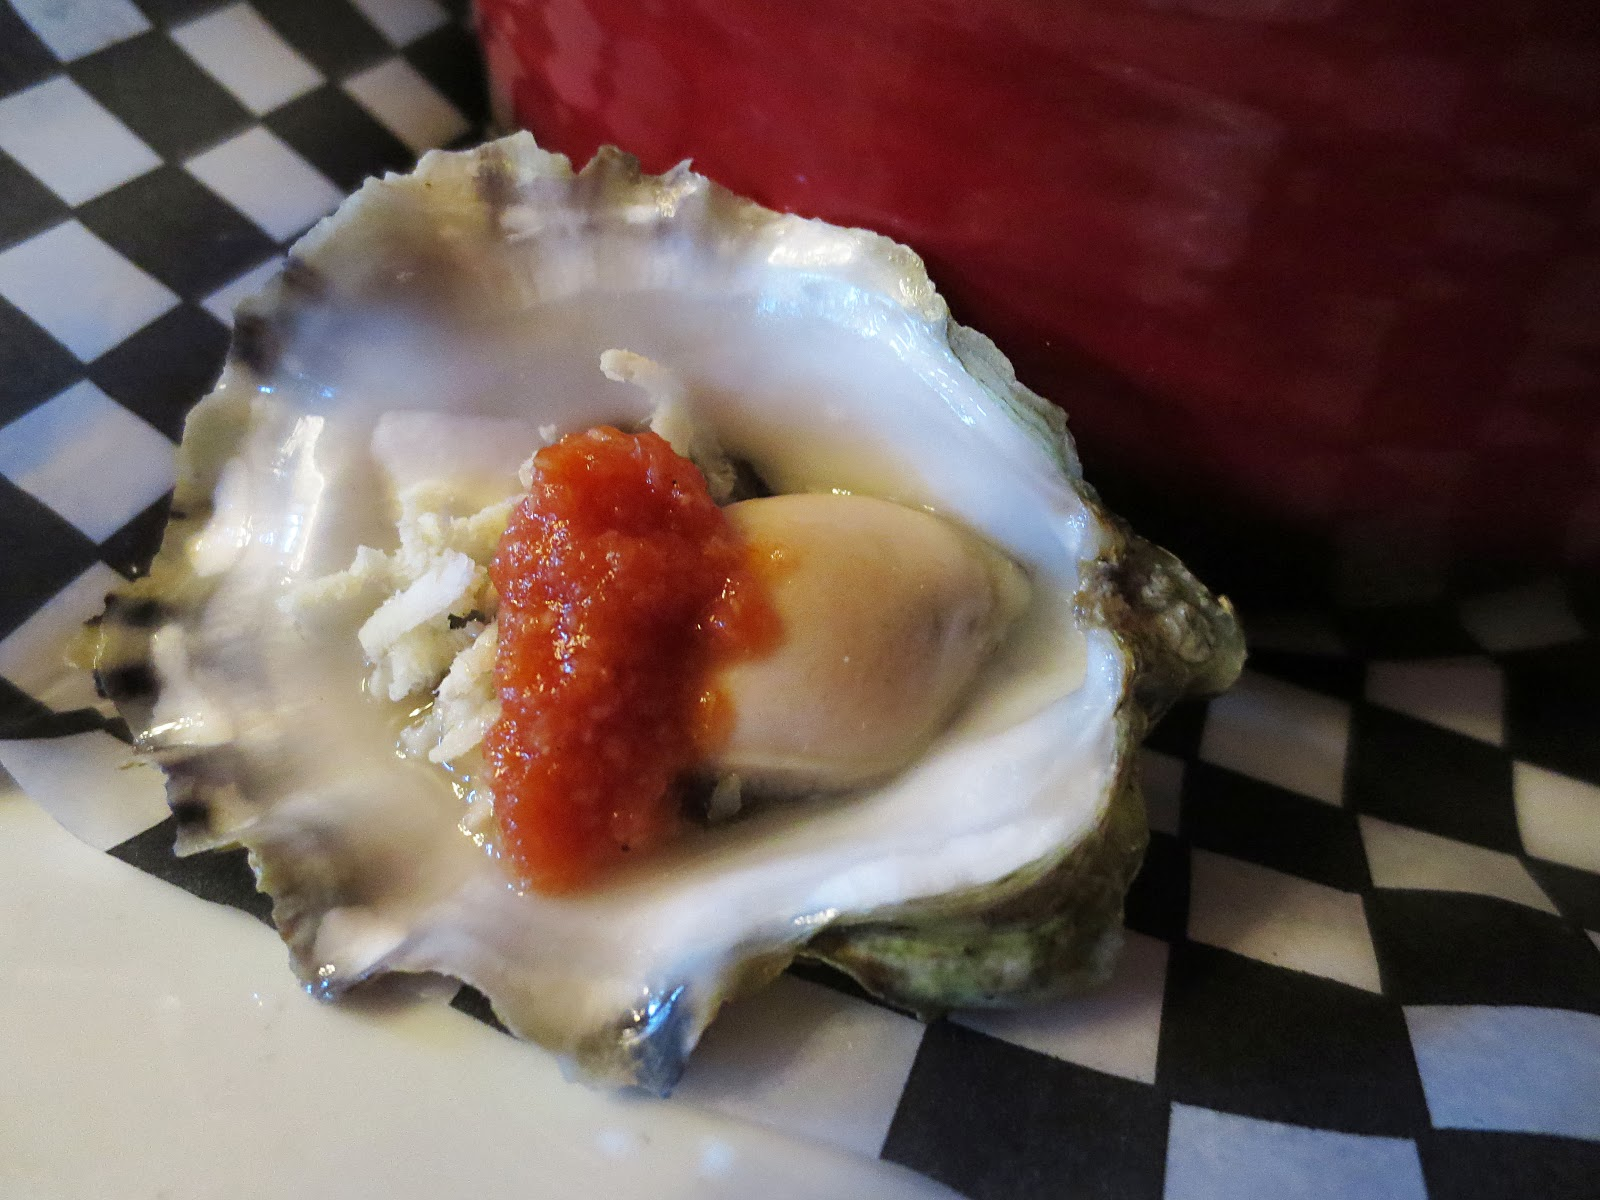 Raw oyster with spicy salsa and freshly graded horseradish